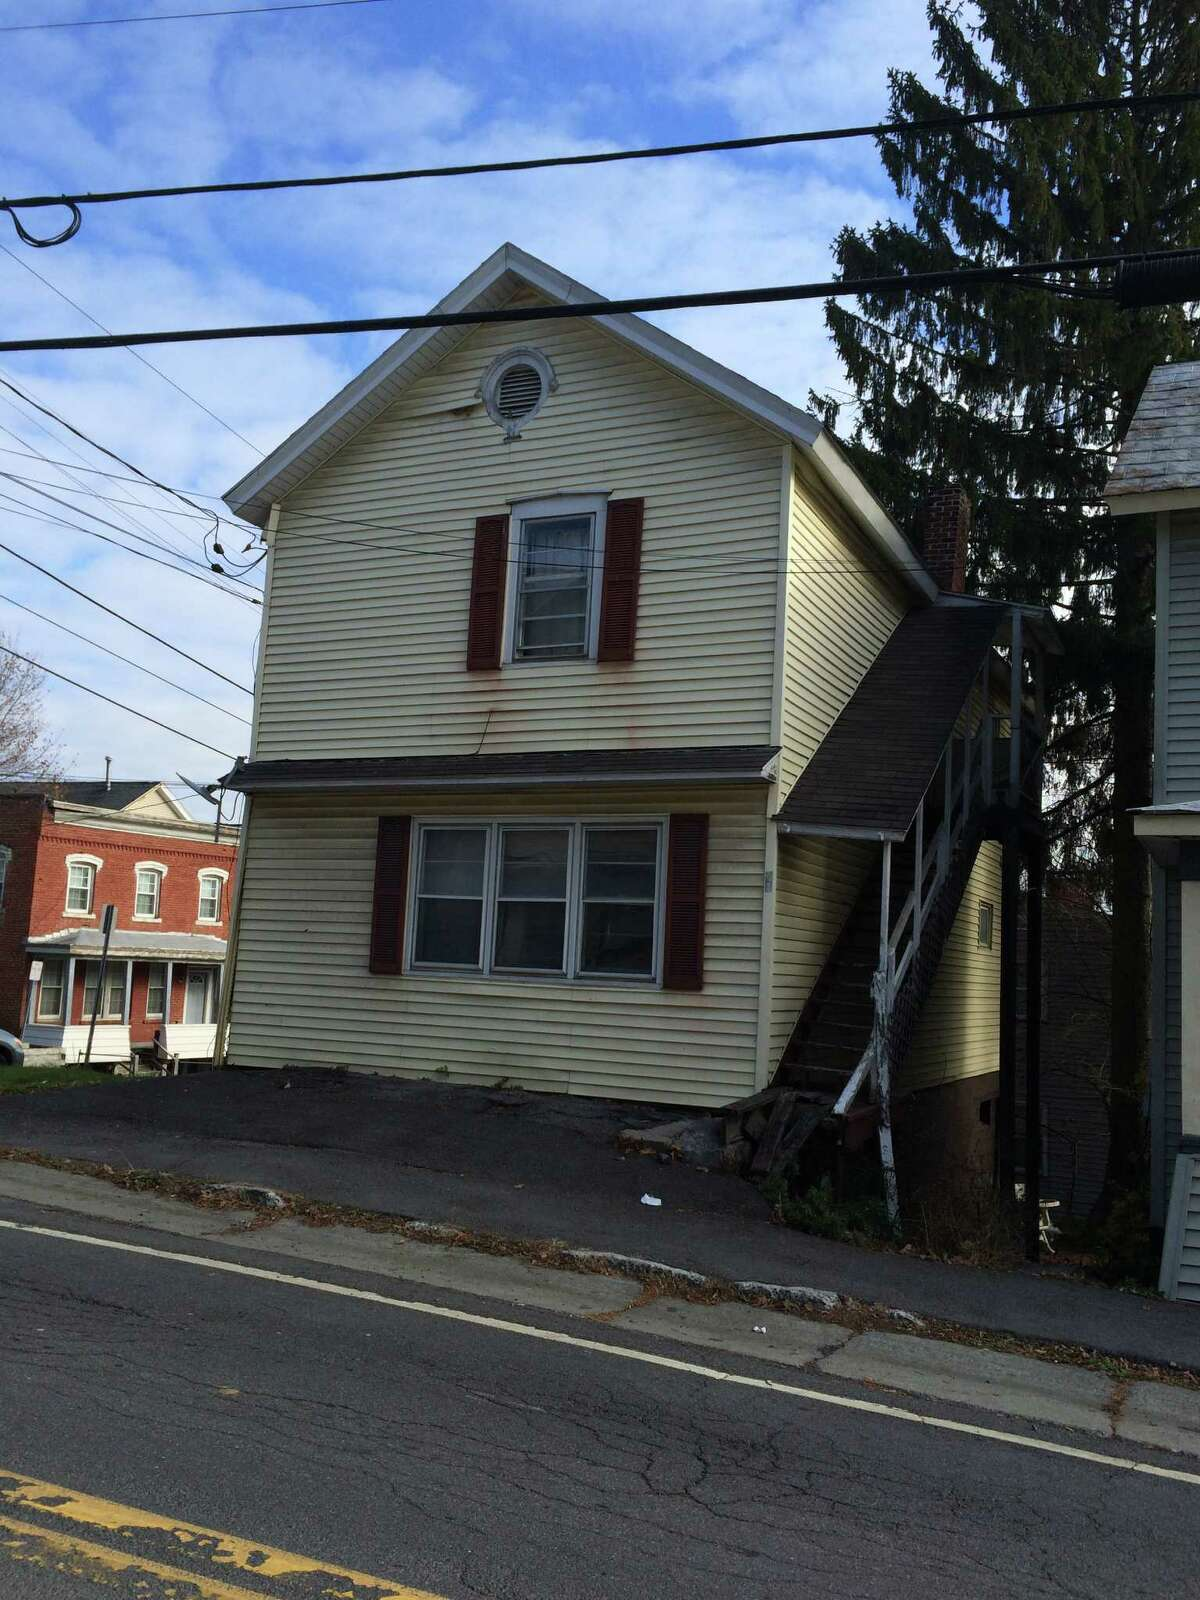 The town of Coeymans put 78 Main St. out to bid. But a number whited-out and changed on a bid from Coeymans Industrial Park led to the town's police chief investigating. He said he found nothing illegal done, but the town board decided to throw out the bid. (Lauren Stanforth)